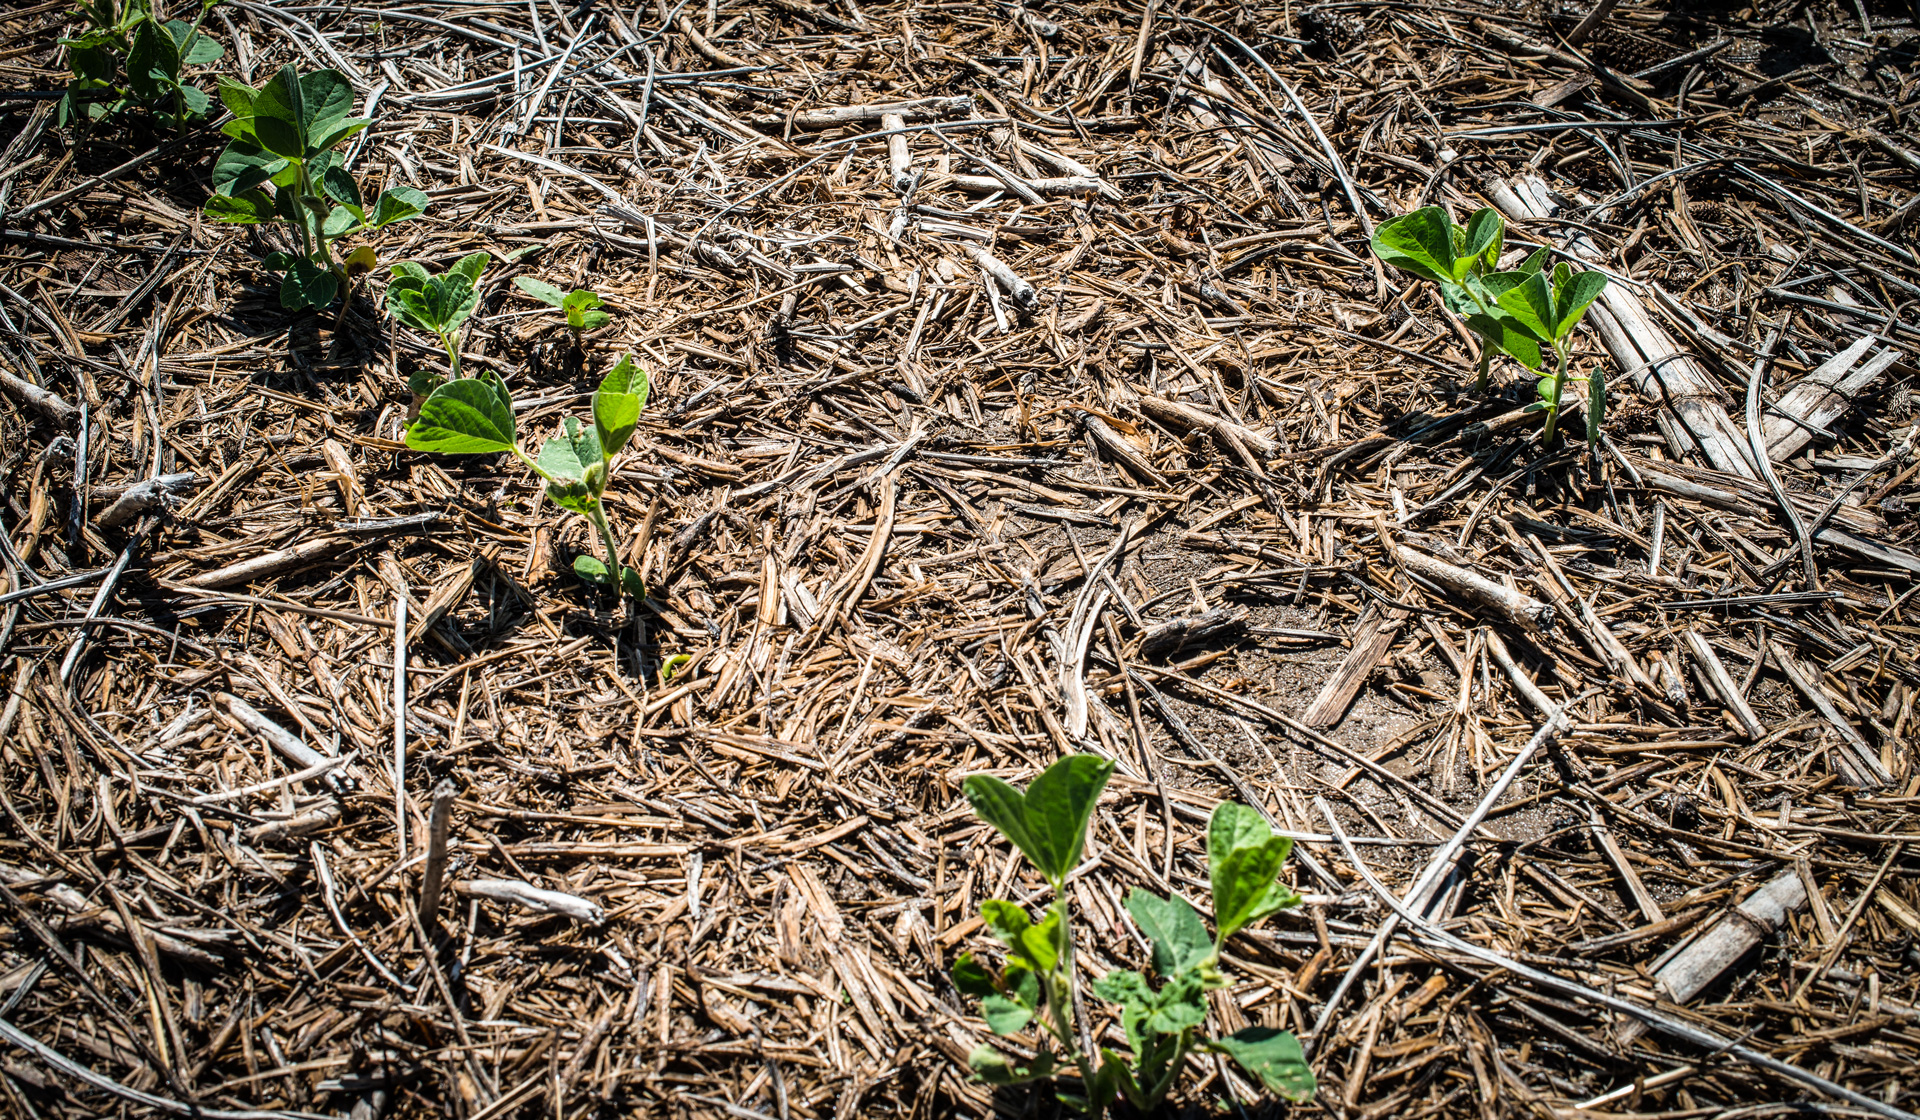 Soybeans emerging in field residue. PHOTO: Soil Health Partnership